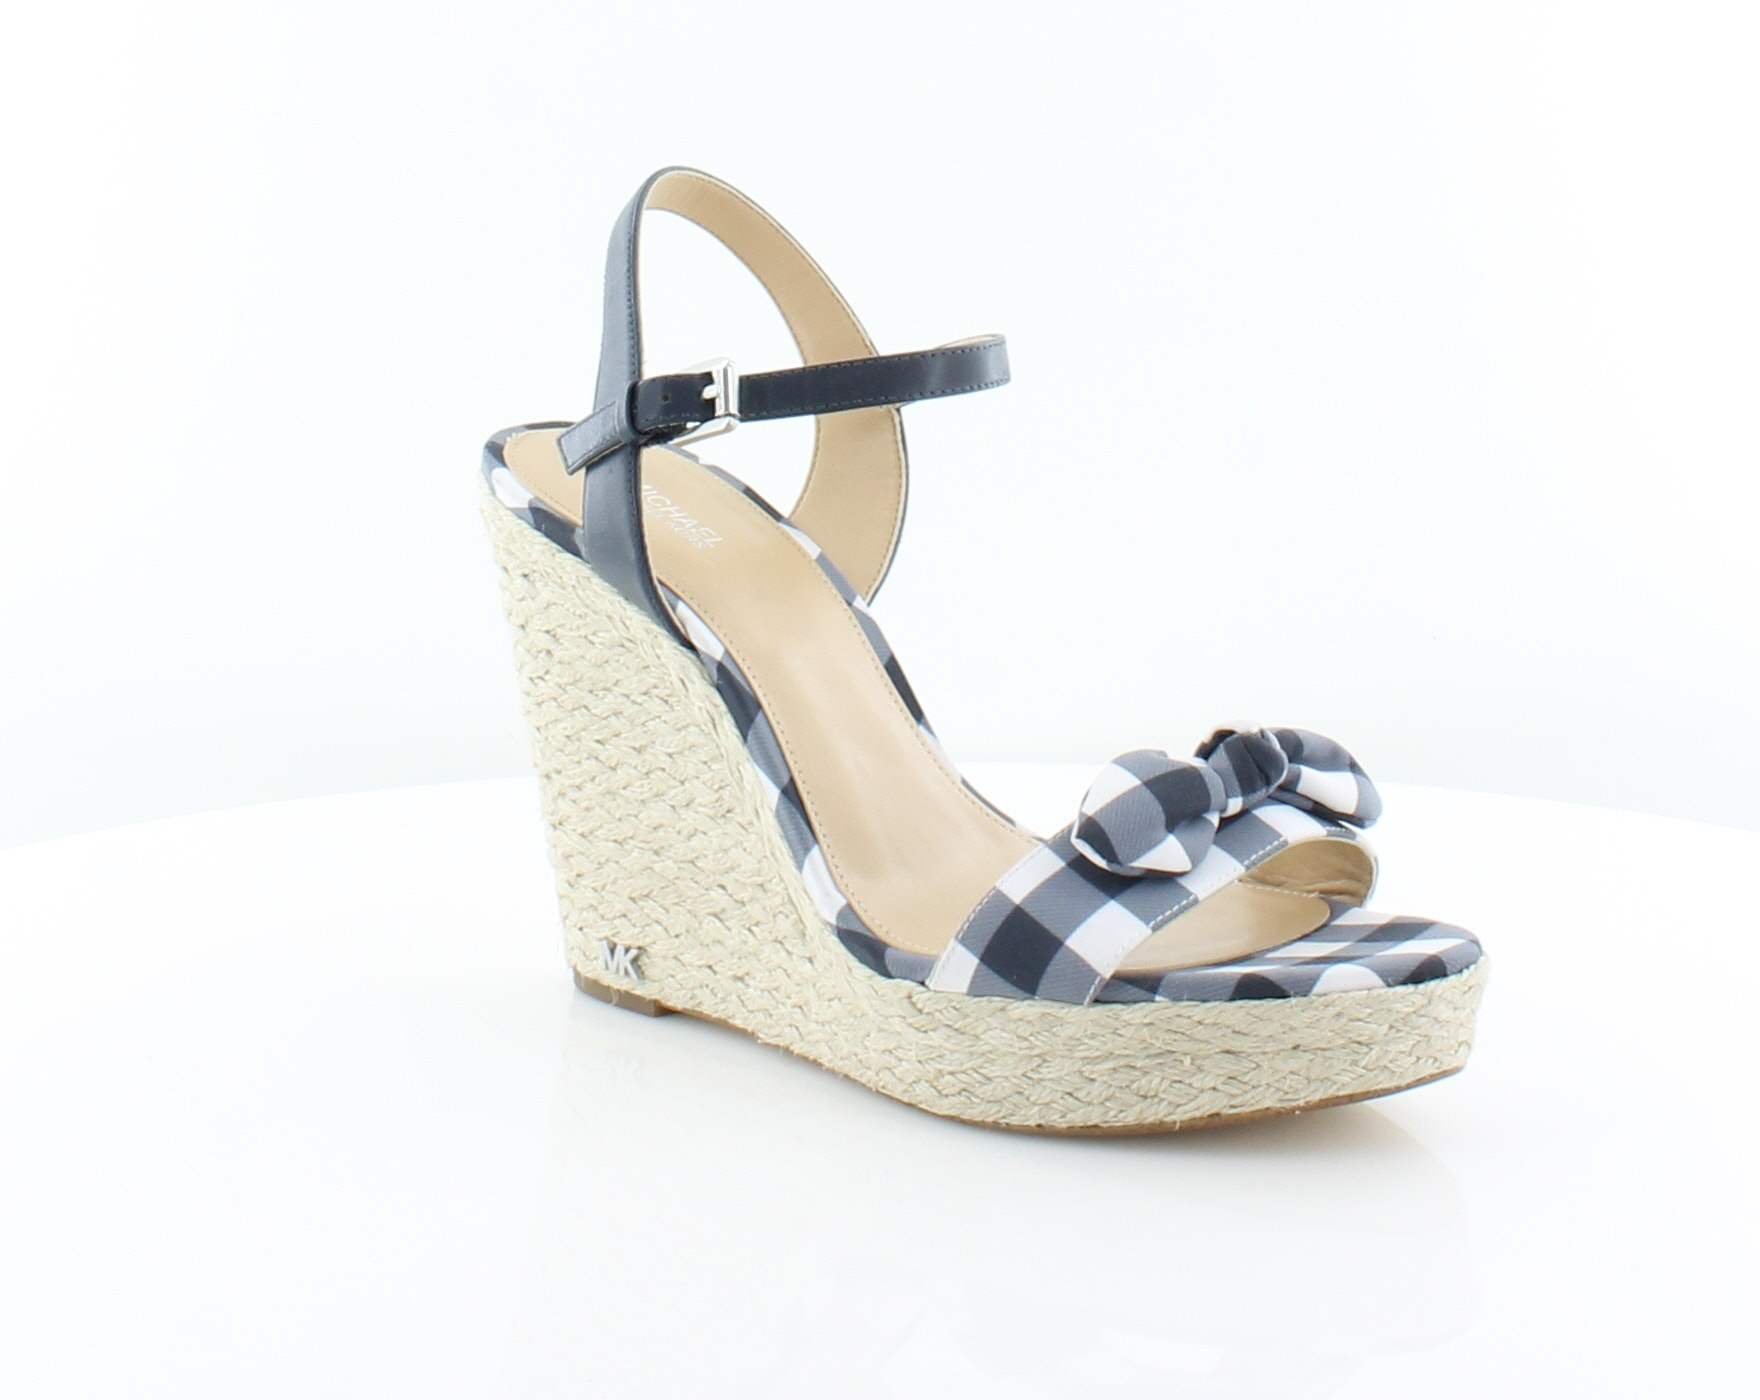 722b25d42d7 Details about Michael Kors Pippa Wedge Blue Womens Shoes Size 10 M Sandals  MSRP $120